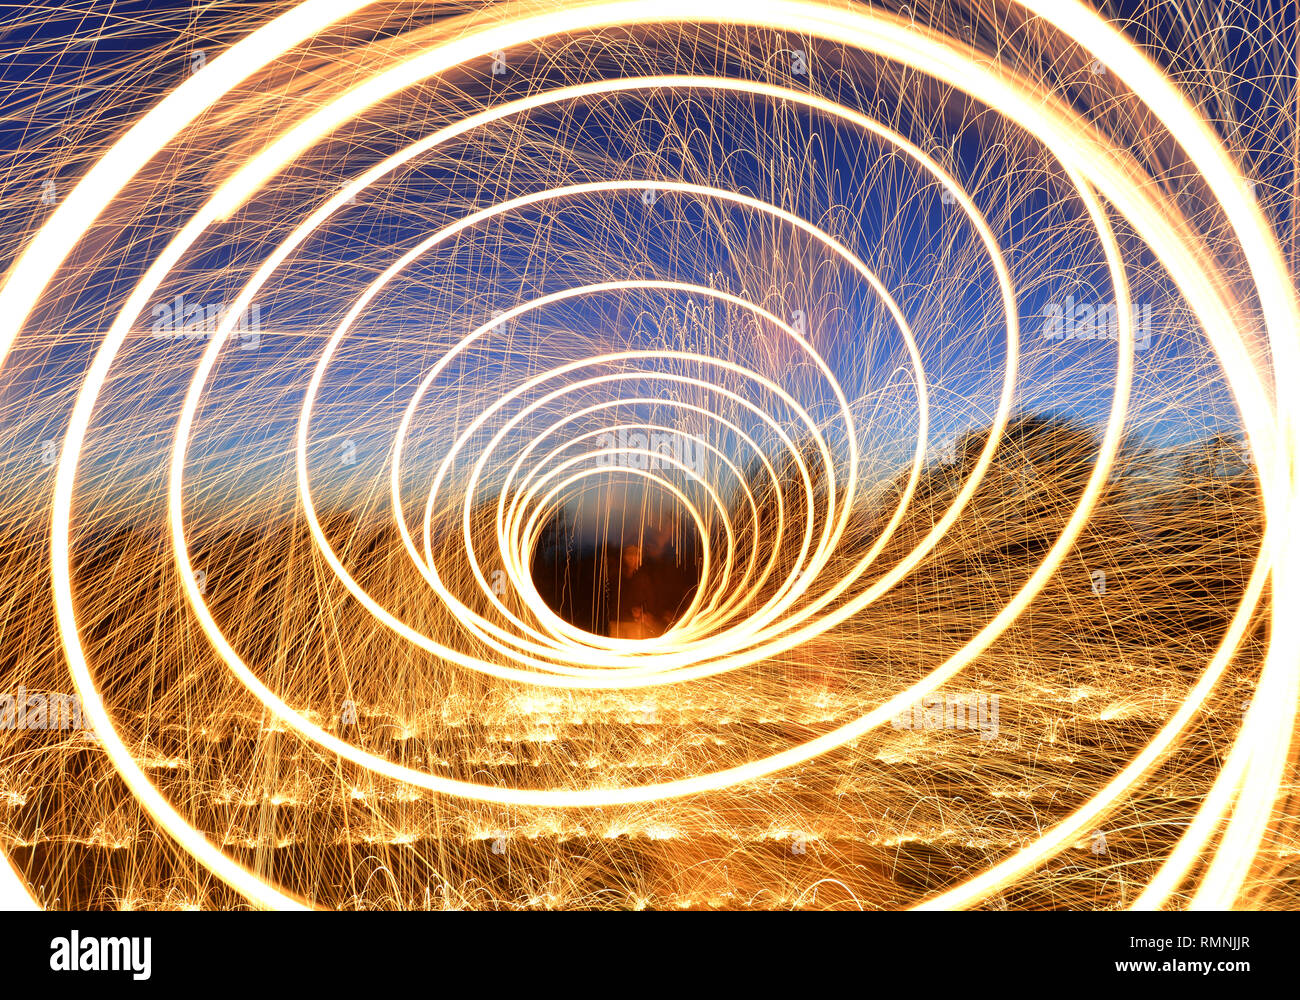 Steel wool photography. Light trails created by sparks during a long exposure photograph of burning steel wool. - Stock Image